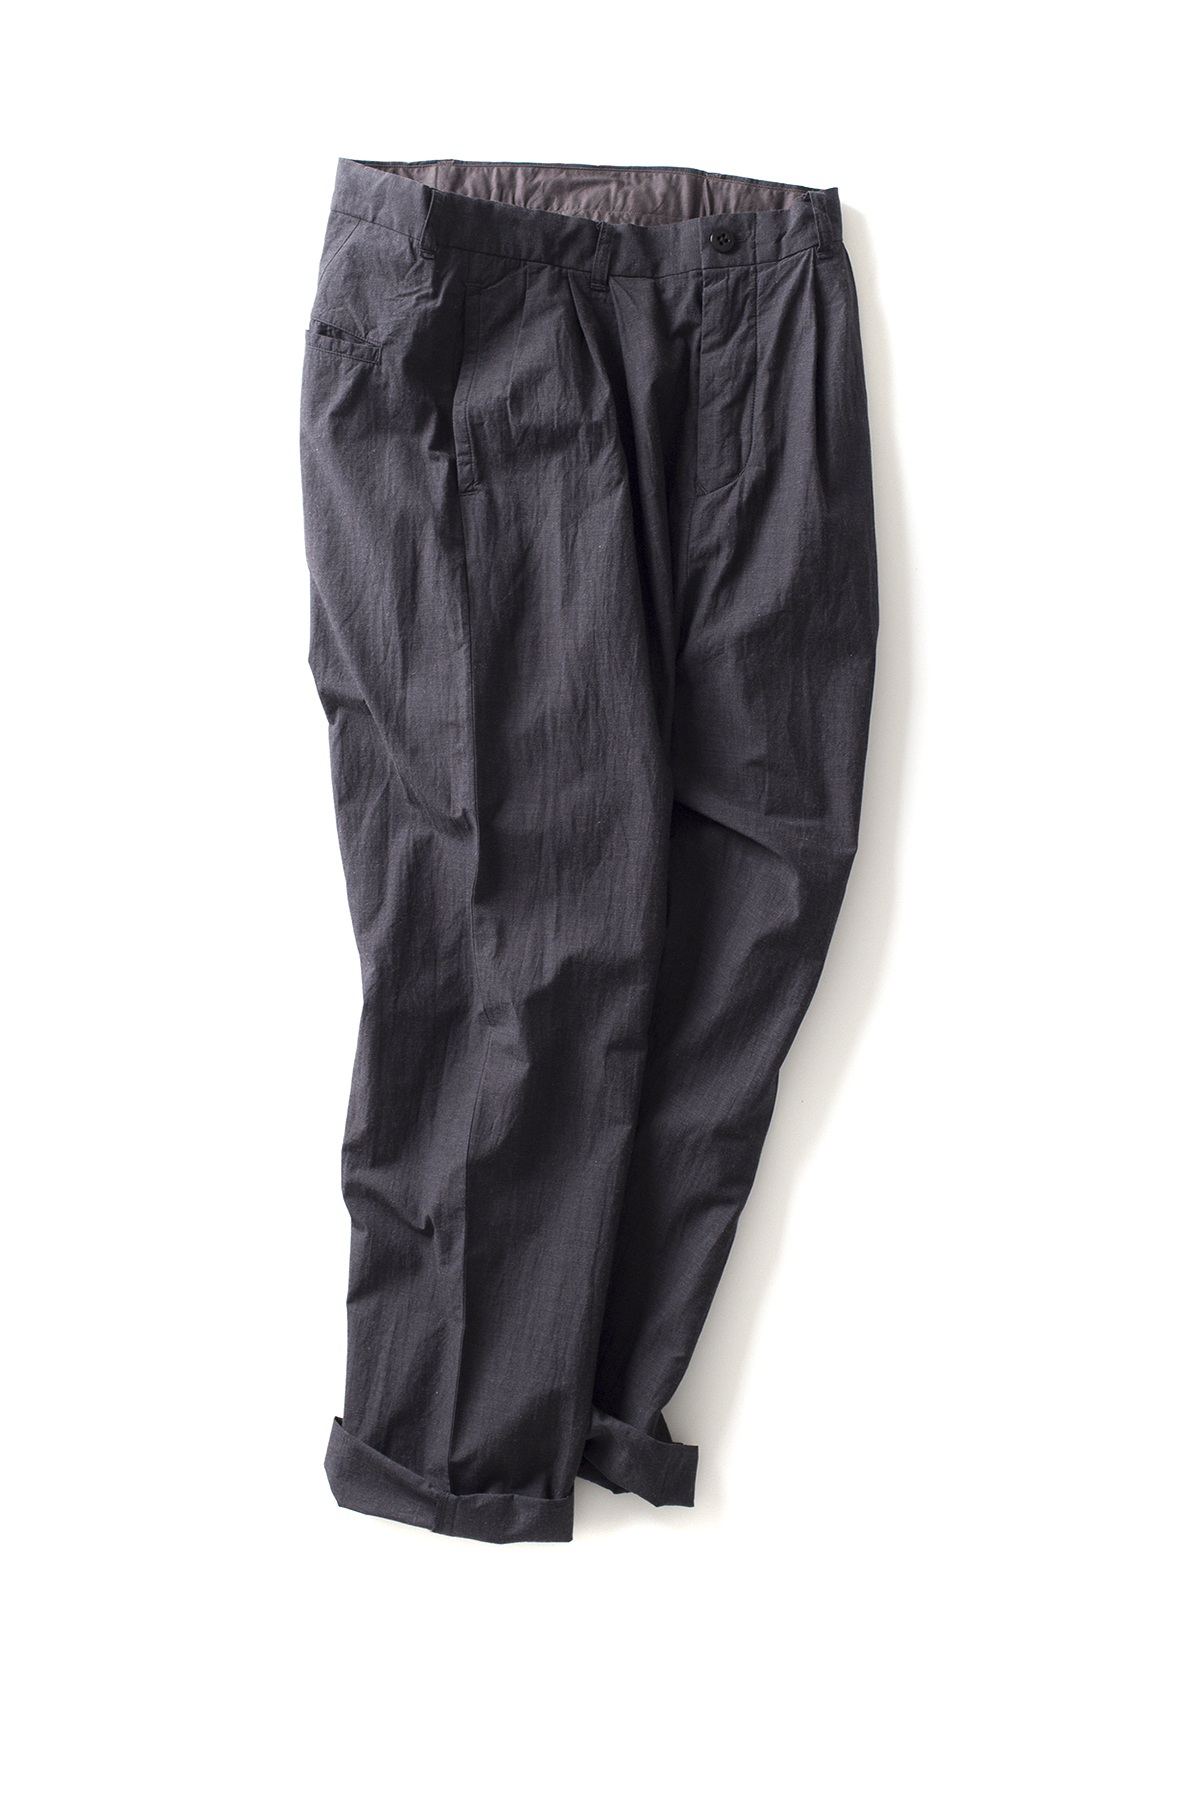 maillot : Heather Cotton Tuck Tapered Pants (Charcoal)